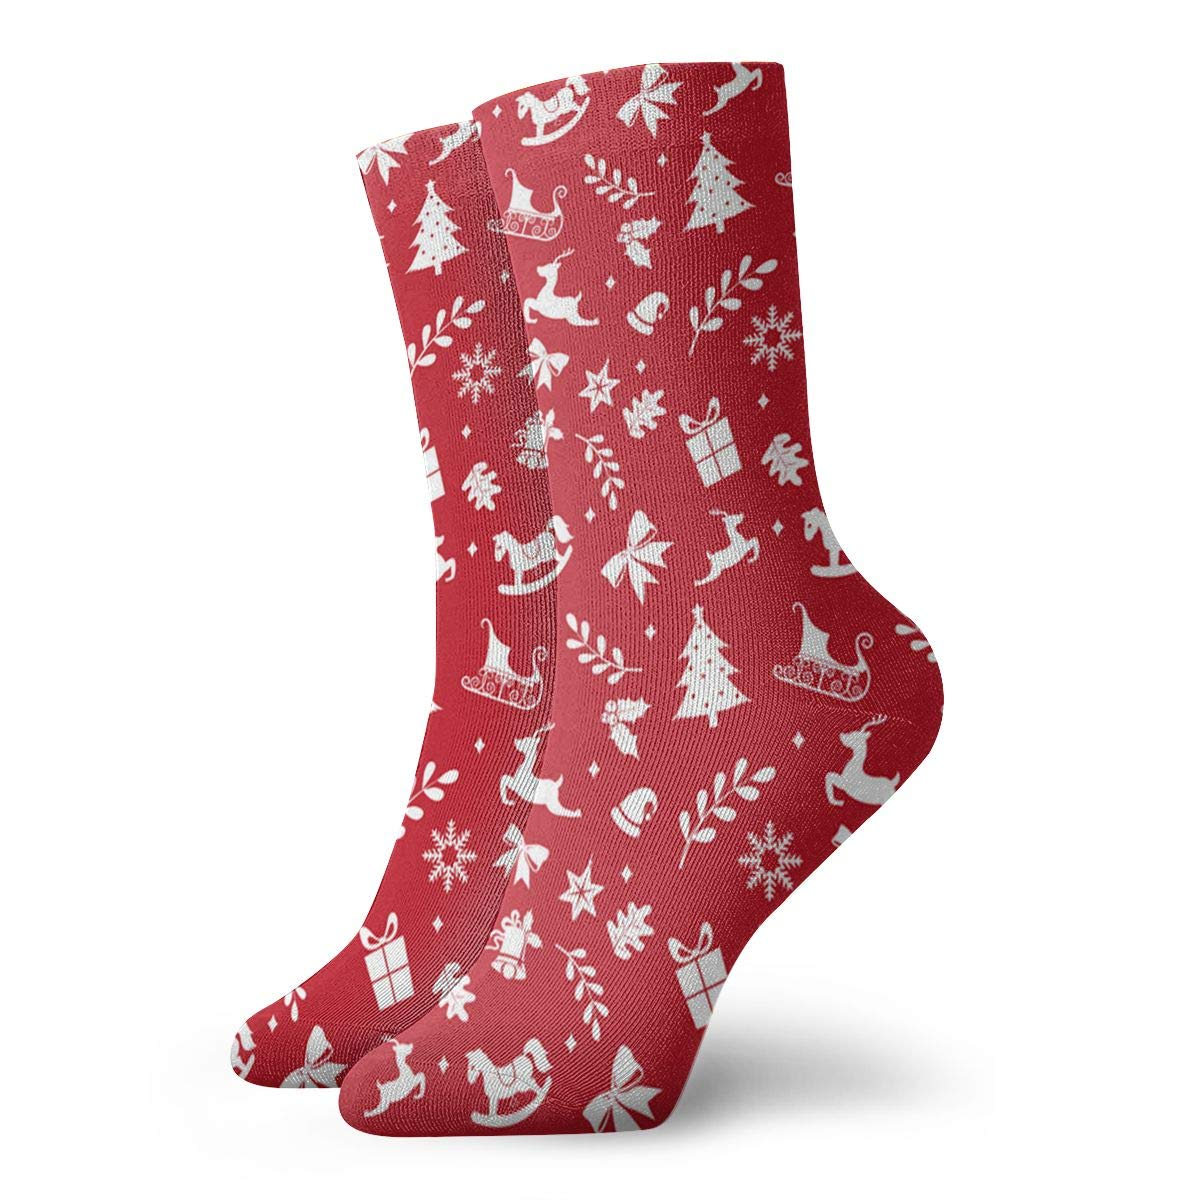 Red Deer Tree Unisex Funny Casual Crew Socks Athletic Socks For Boys Girls Kids Teenagers